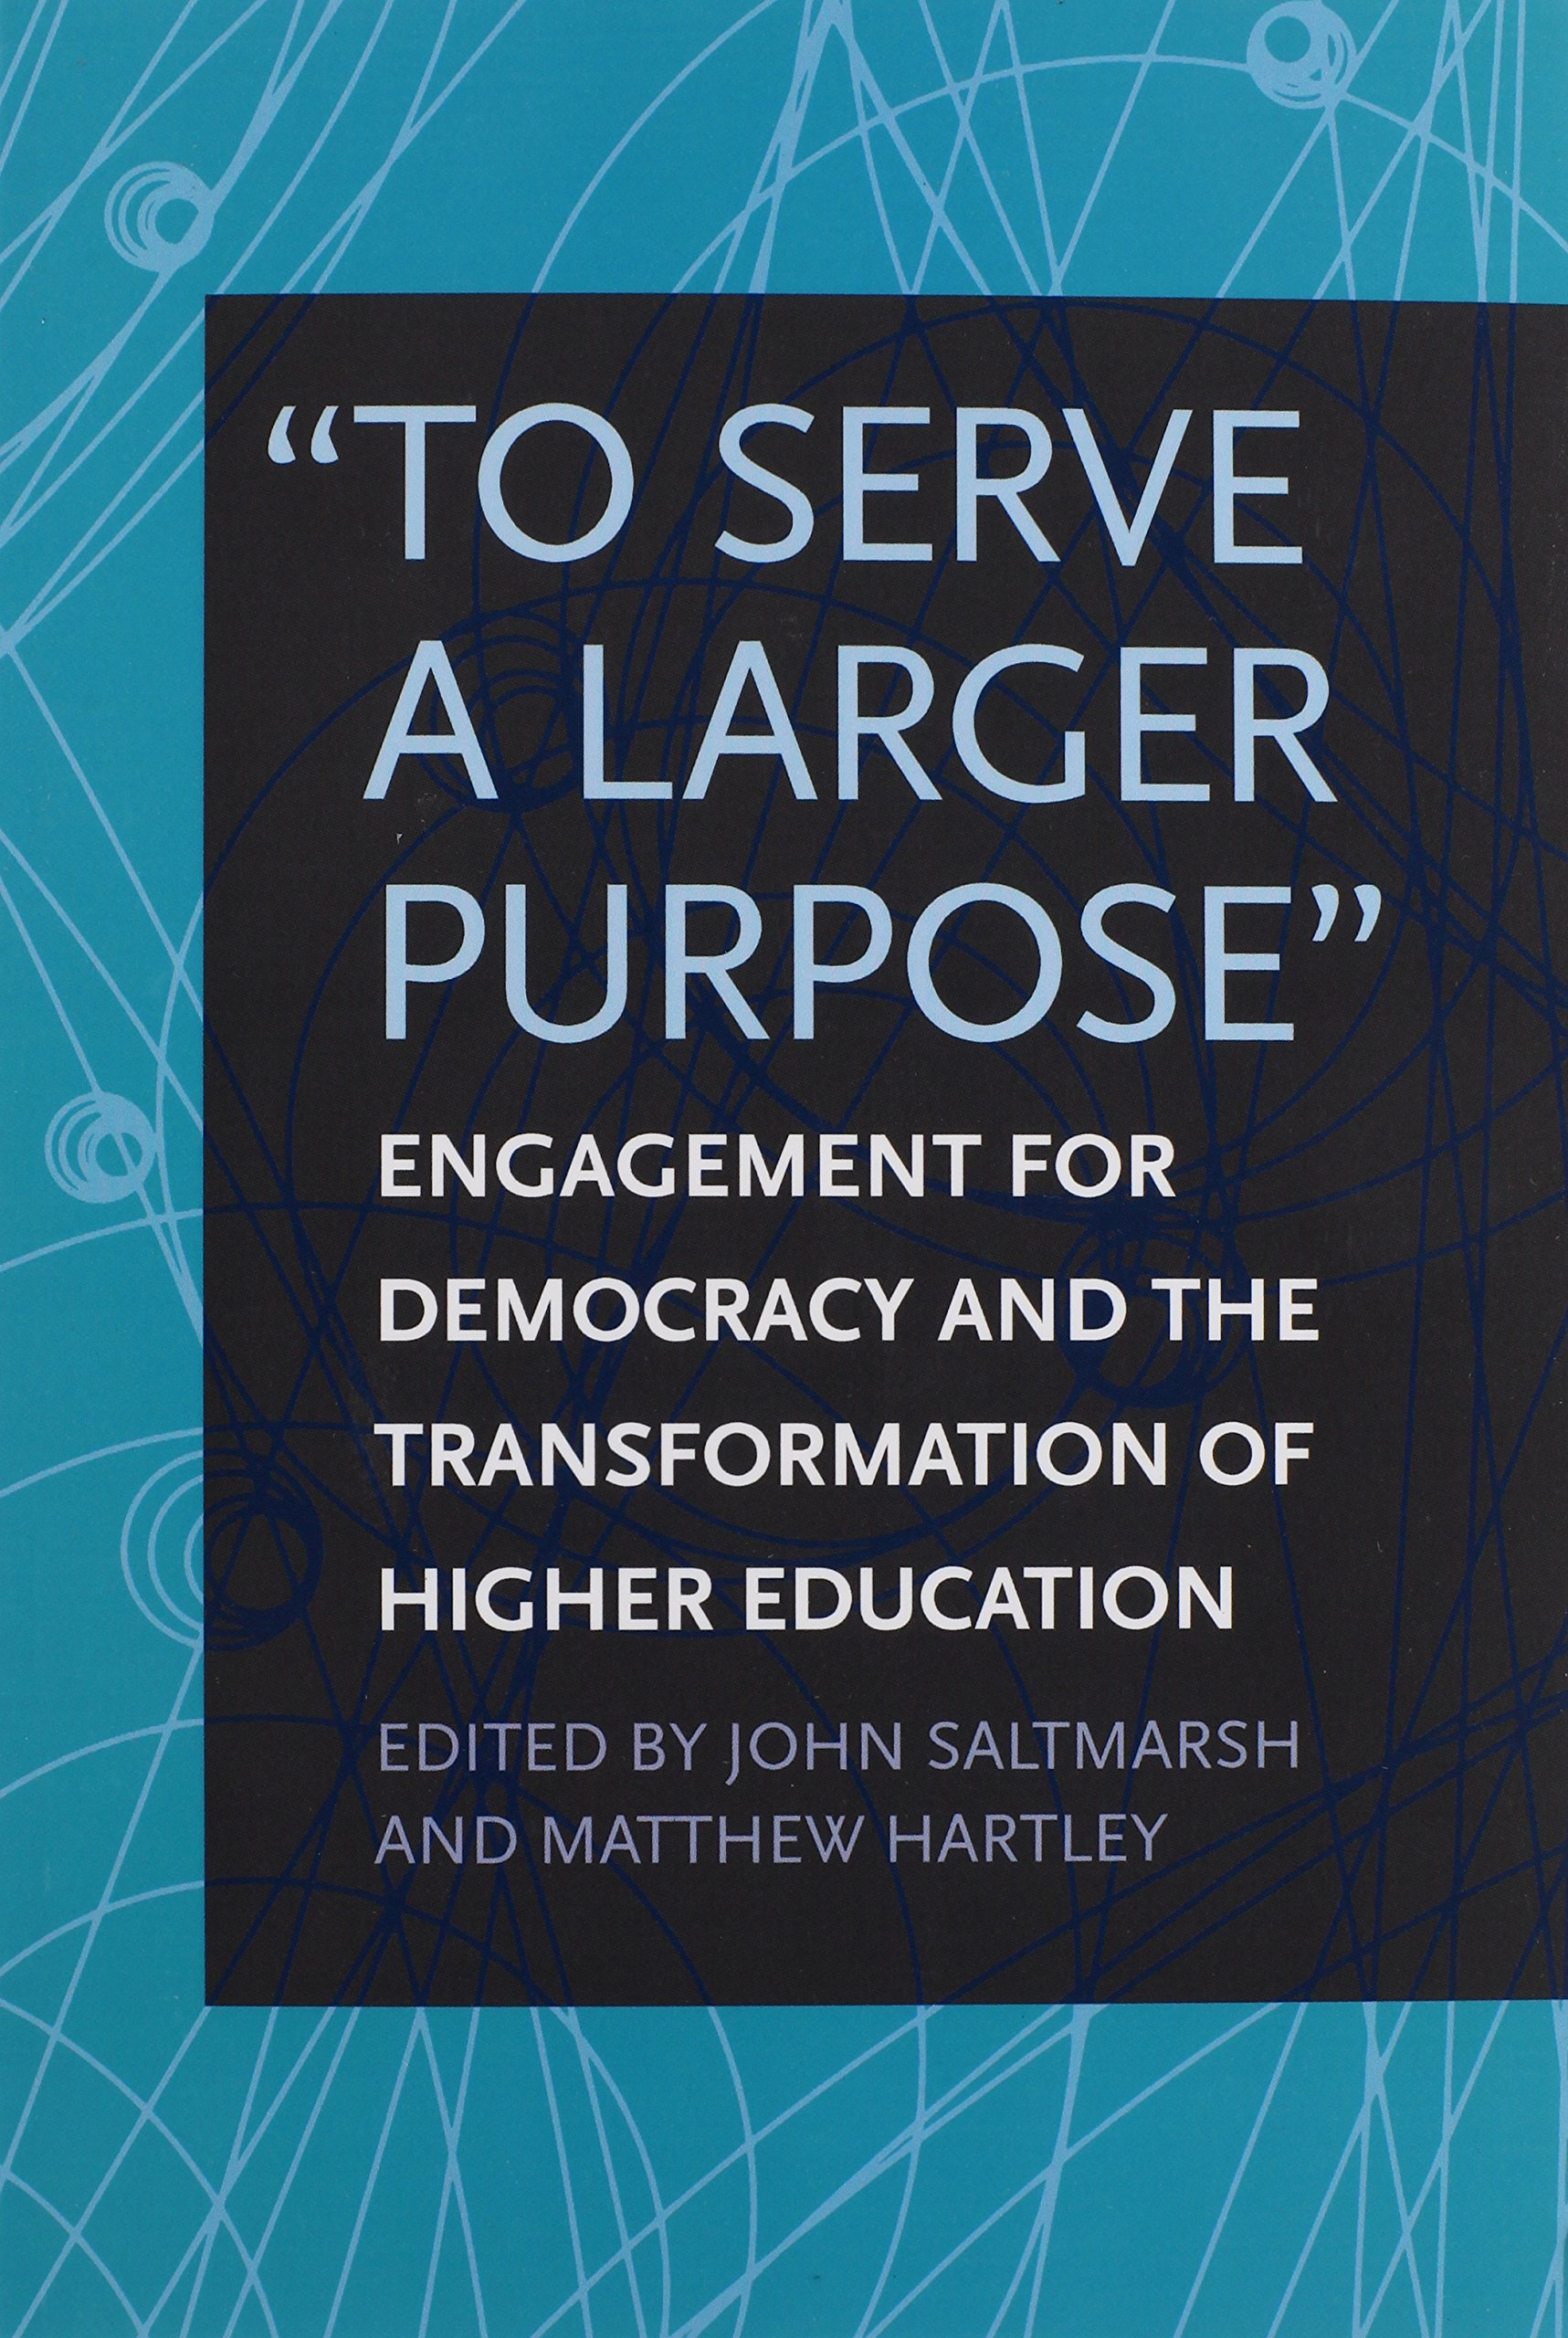 Image result for To Serve a Larger Purpose: Engagement for Democracy and the Transformation of Higher Education by John Saltmarsh